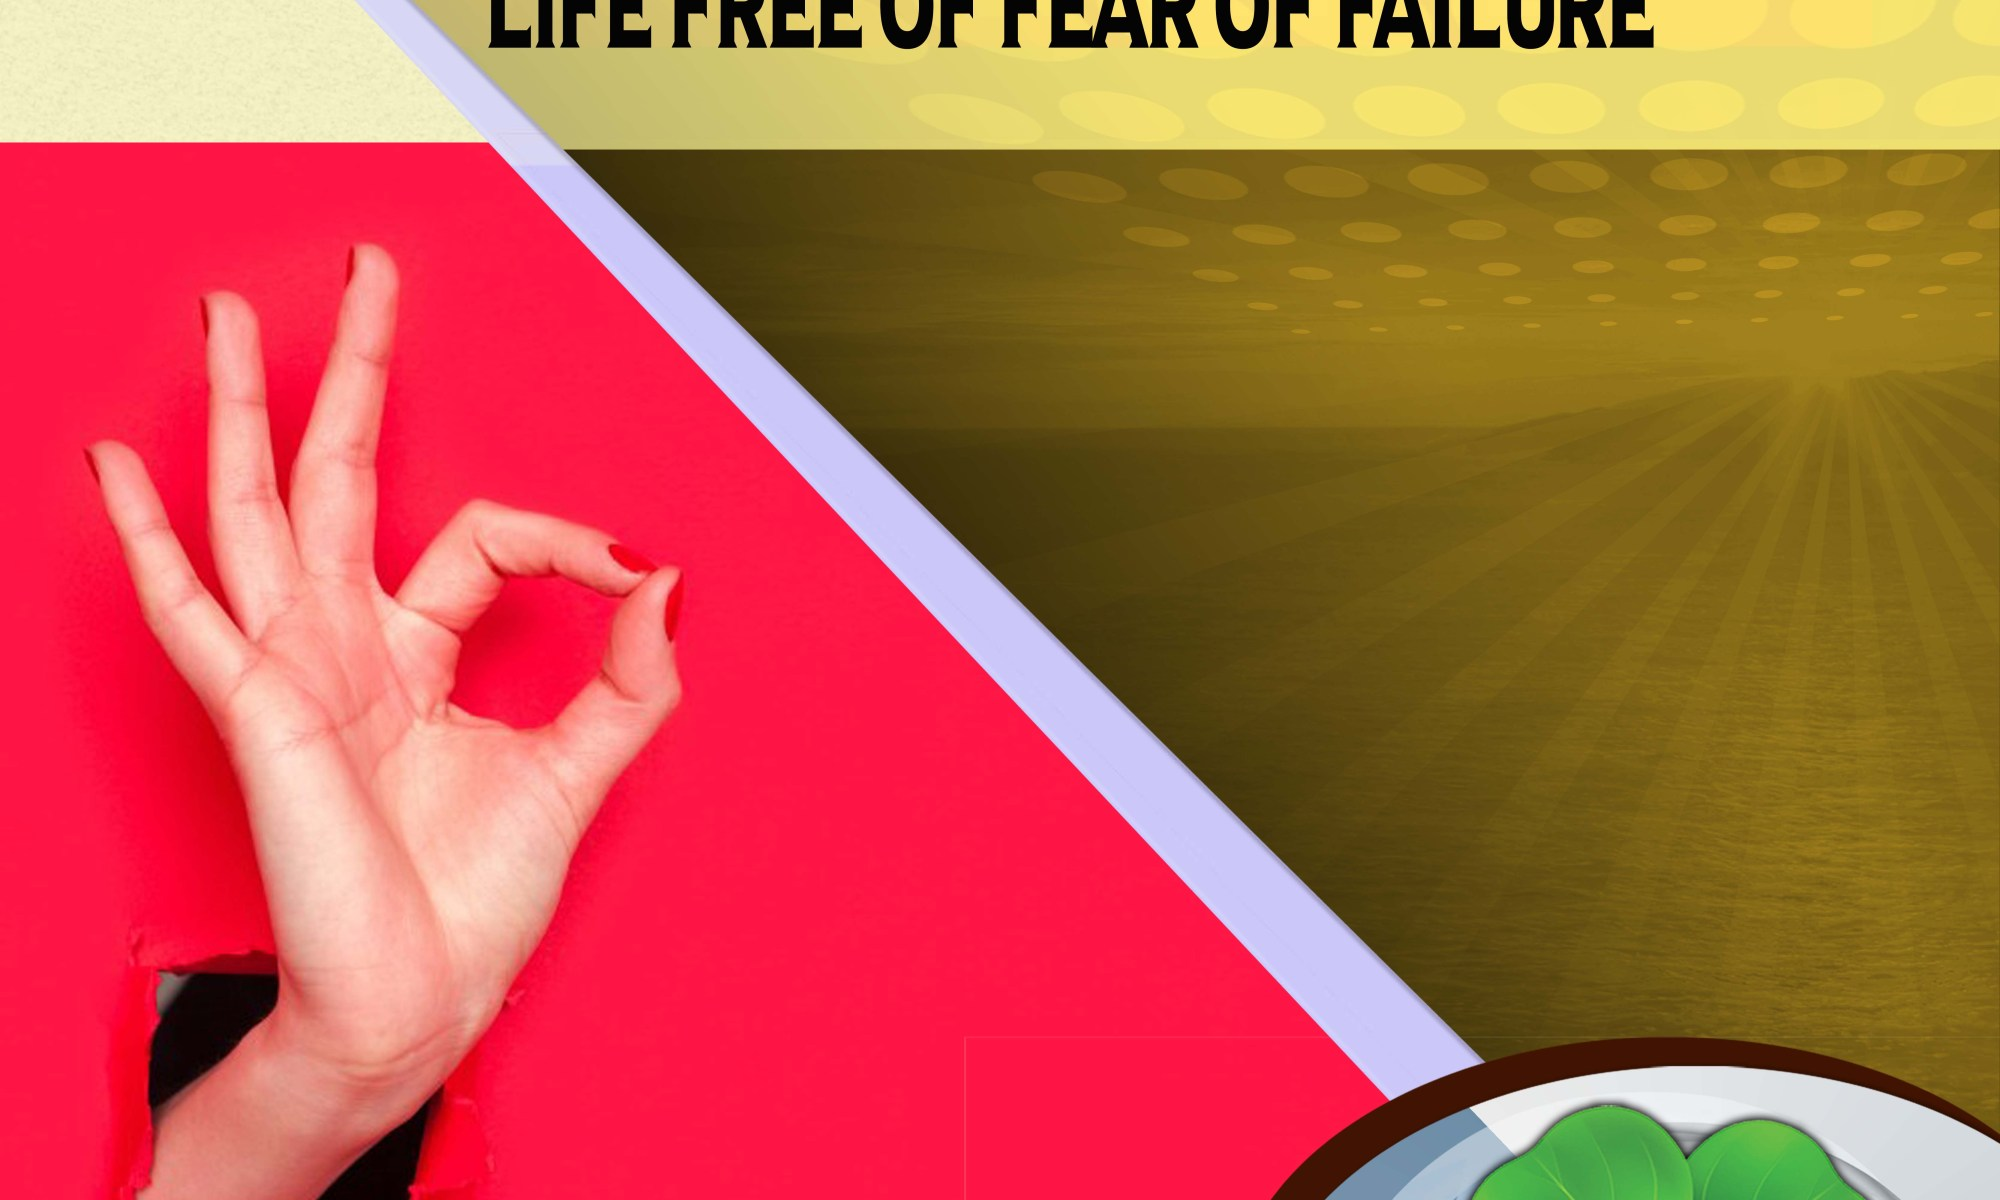 WELCOME LIFE FREE OF FEAR OF FAILURE